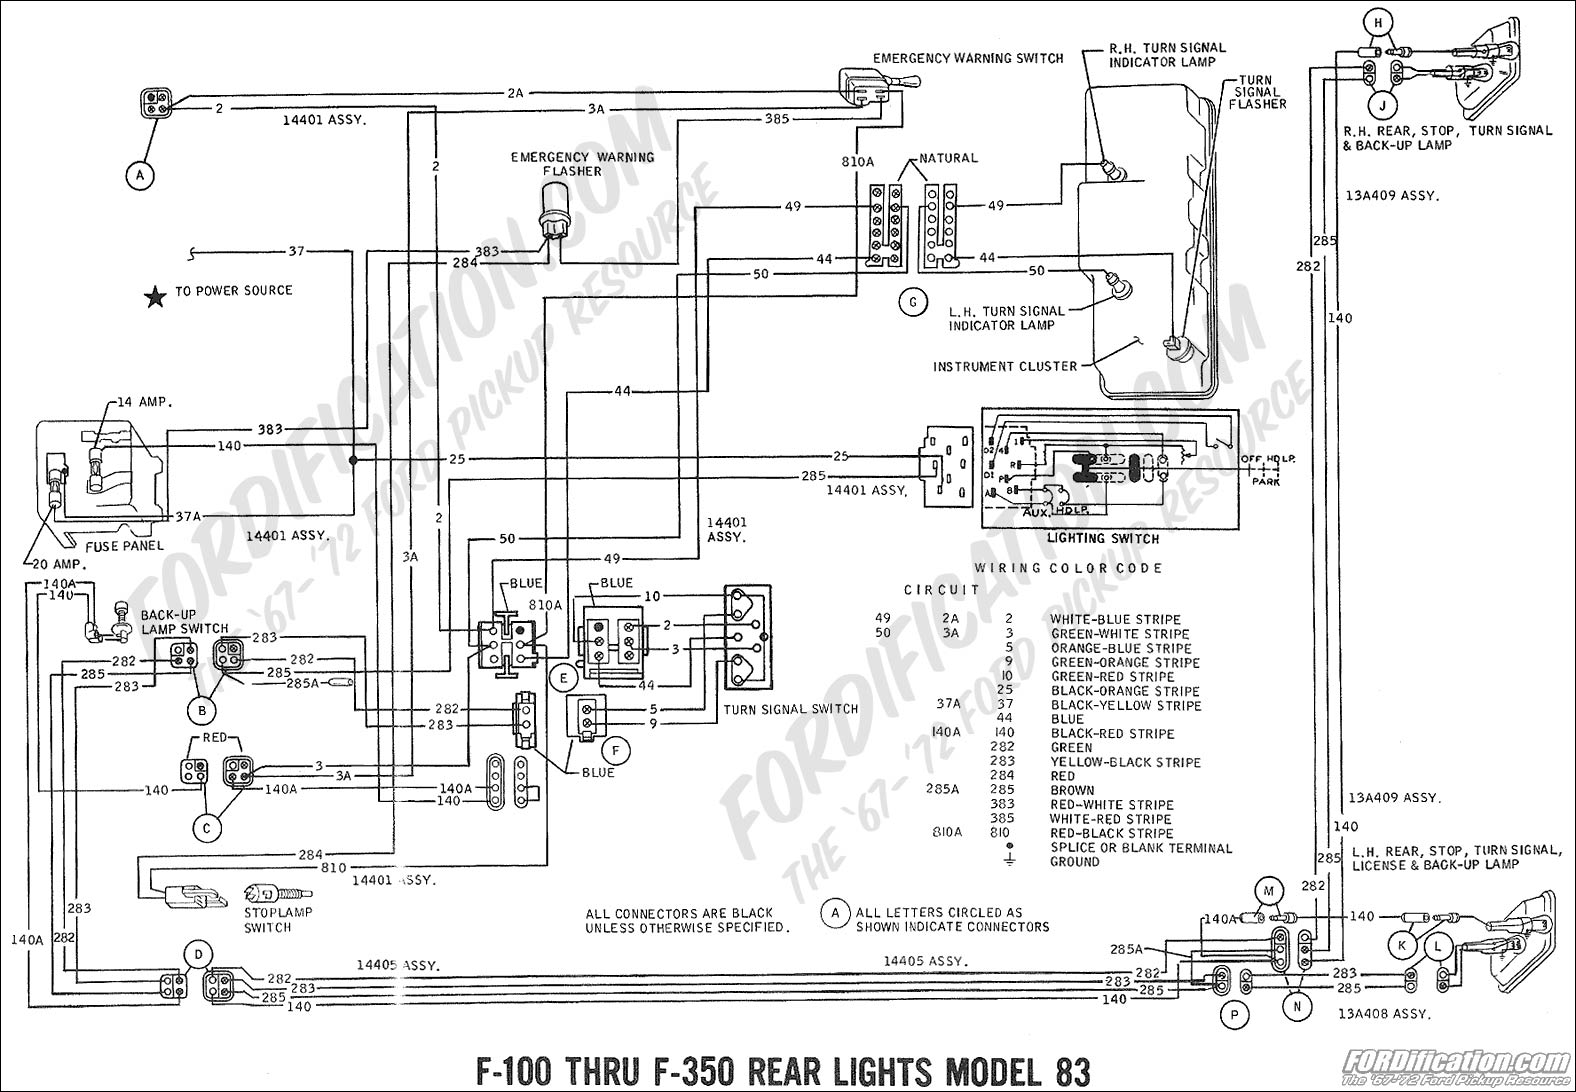 wiring_69rearlights mdl83 2 ford truck technical drawings and schematics section h wiring 2002 F250 Wiring Diagram at reclaimingppi.co